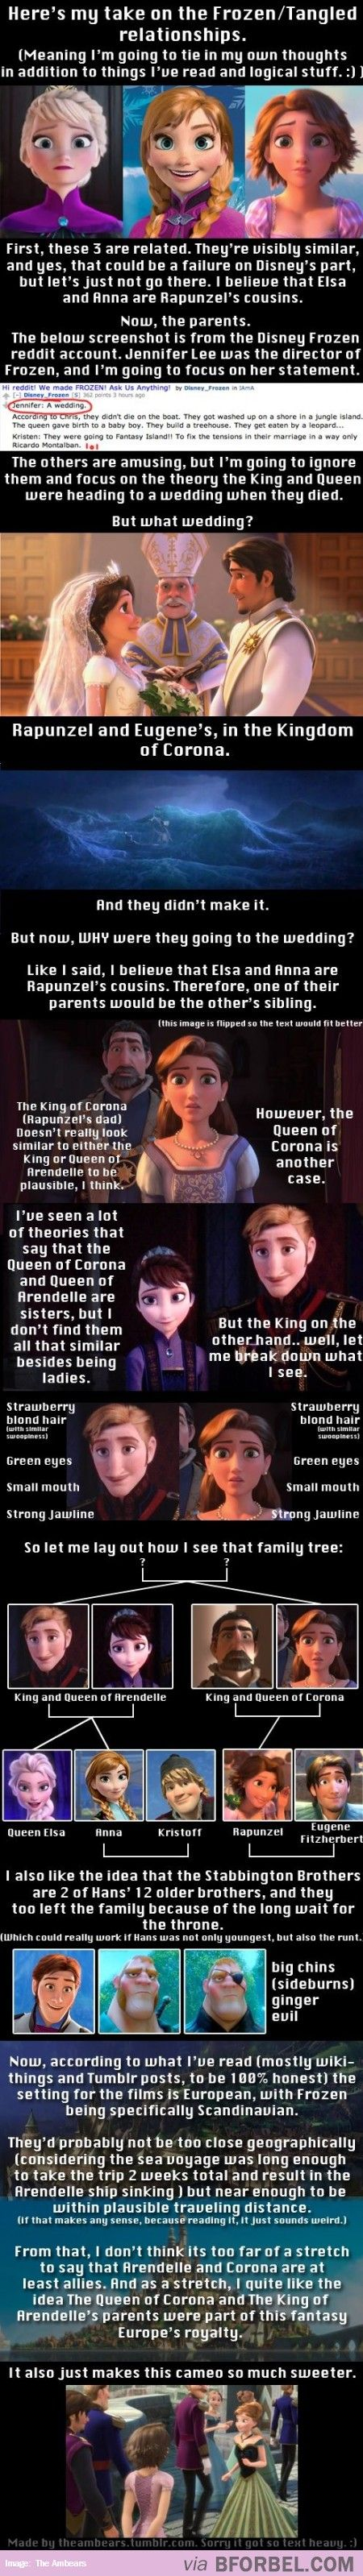 Relationship On Frozen And Tangled… I like this one, cause I had thoughts about Hans being related to the brothers from Tangled too